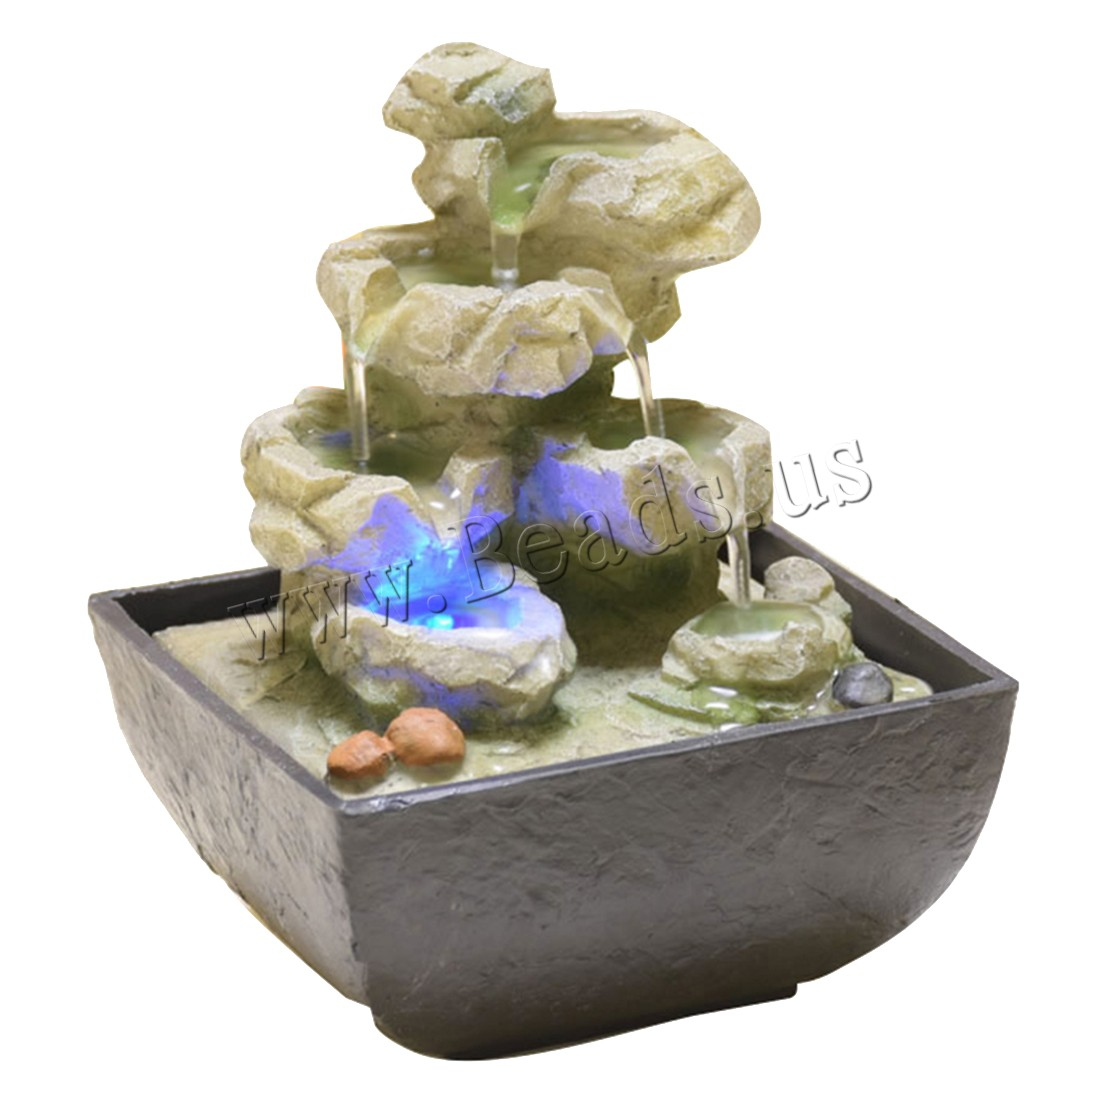 Resin Decorative Fountains Indoor Water Fountains Creative Craft Desktop Home Decor With LED Light Fengshui Water Fountain in Figurines Miniatures from Home Garden